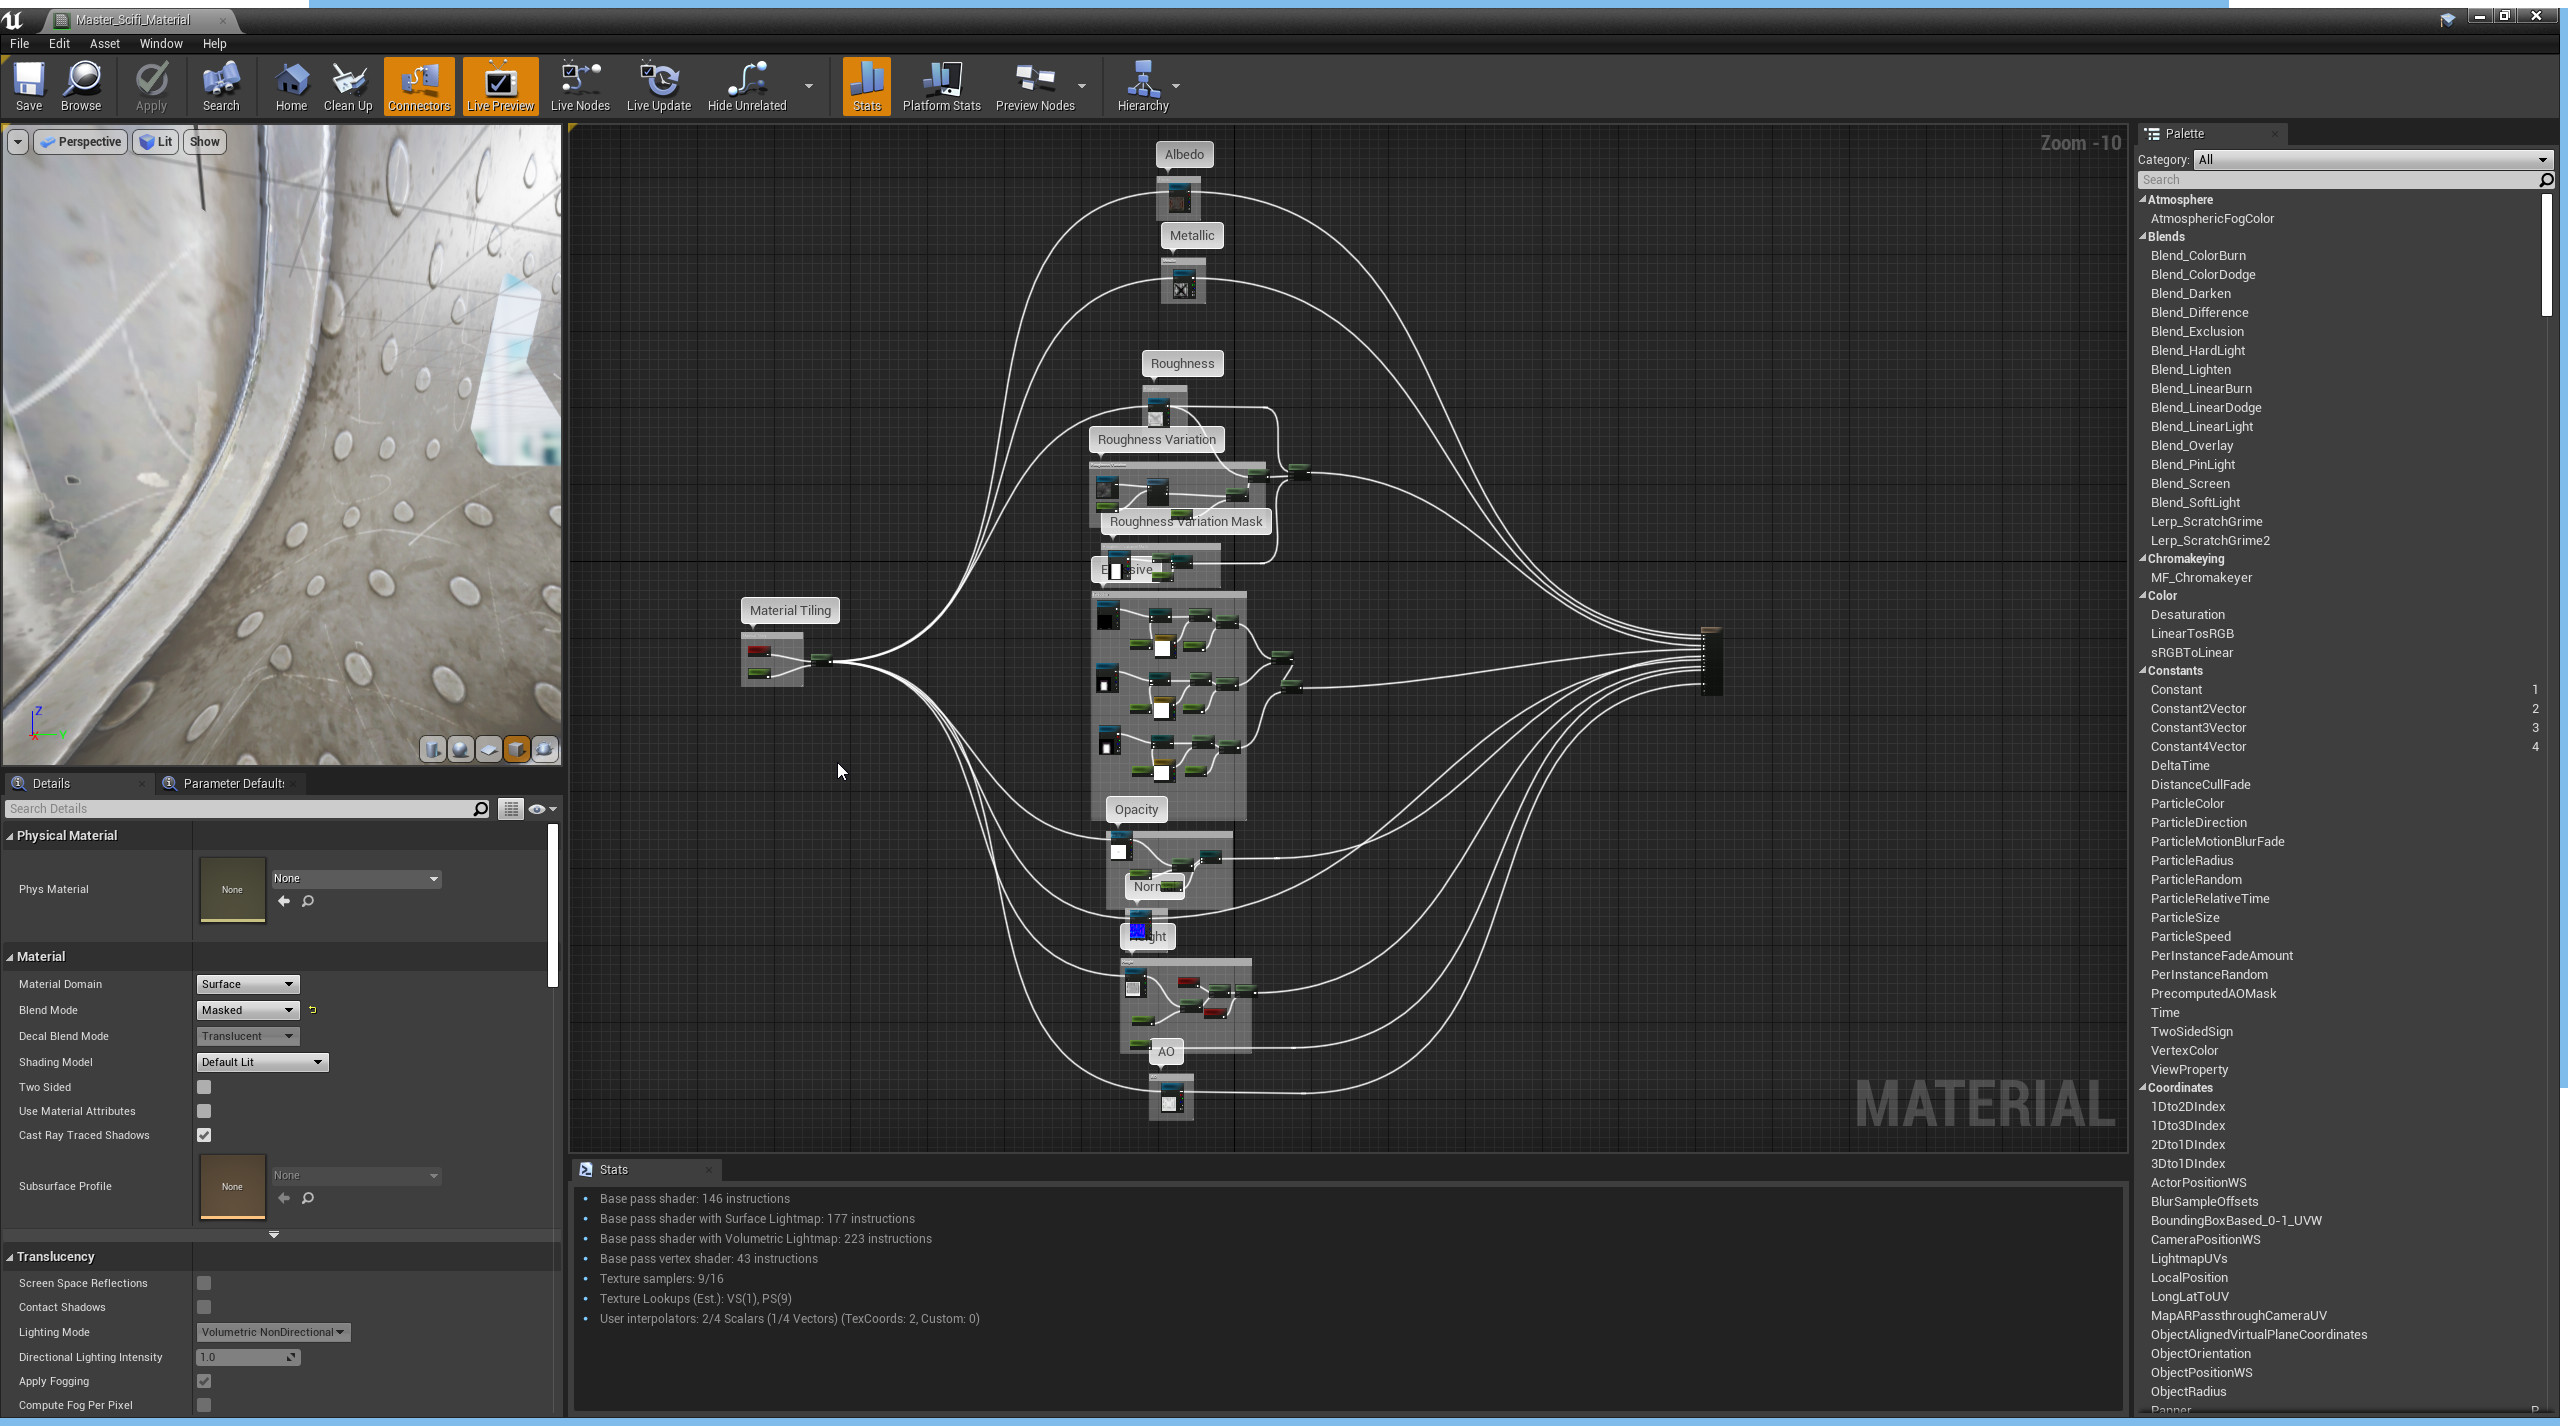 The master material in Unreal. this was was then duplicated with a material instance so that parameters can be changed per instance rather than multiple masters.